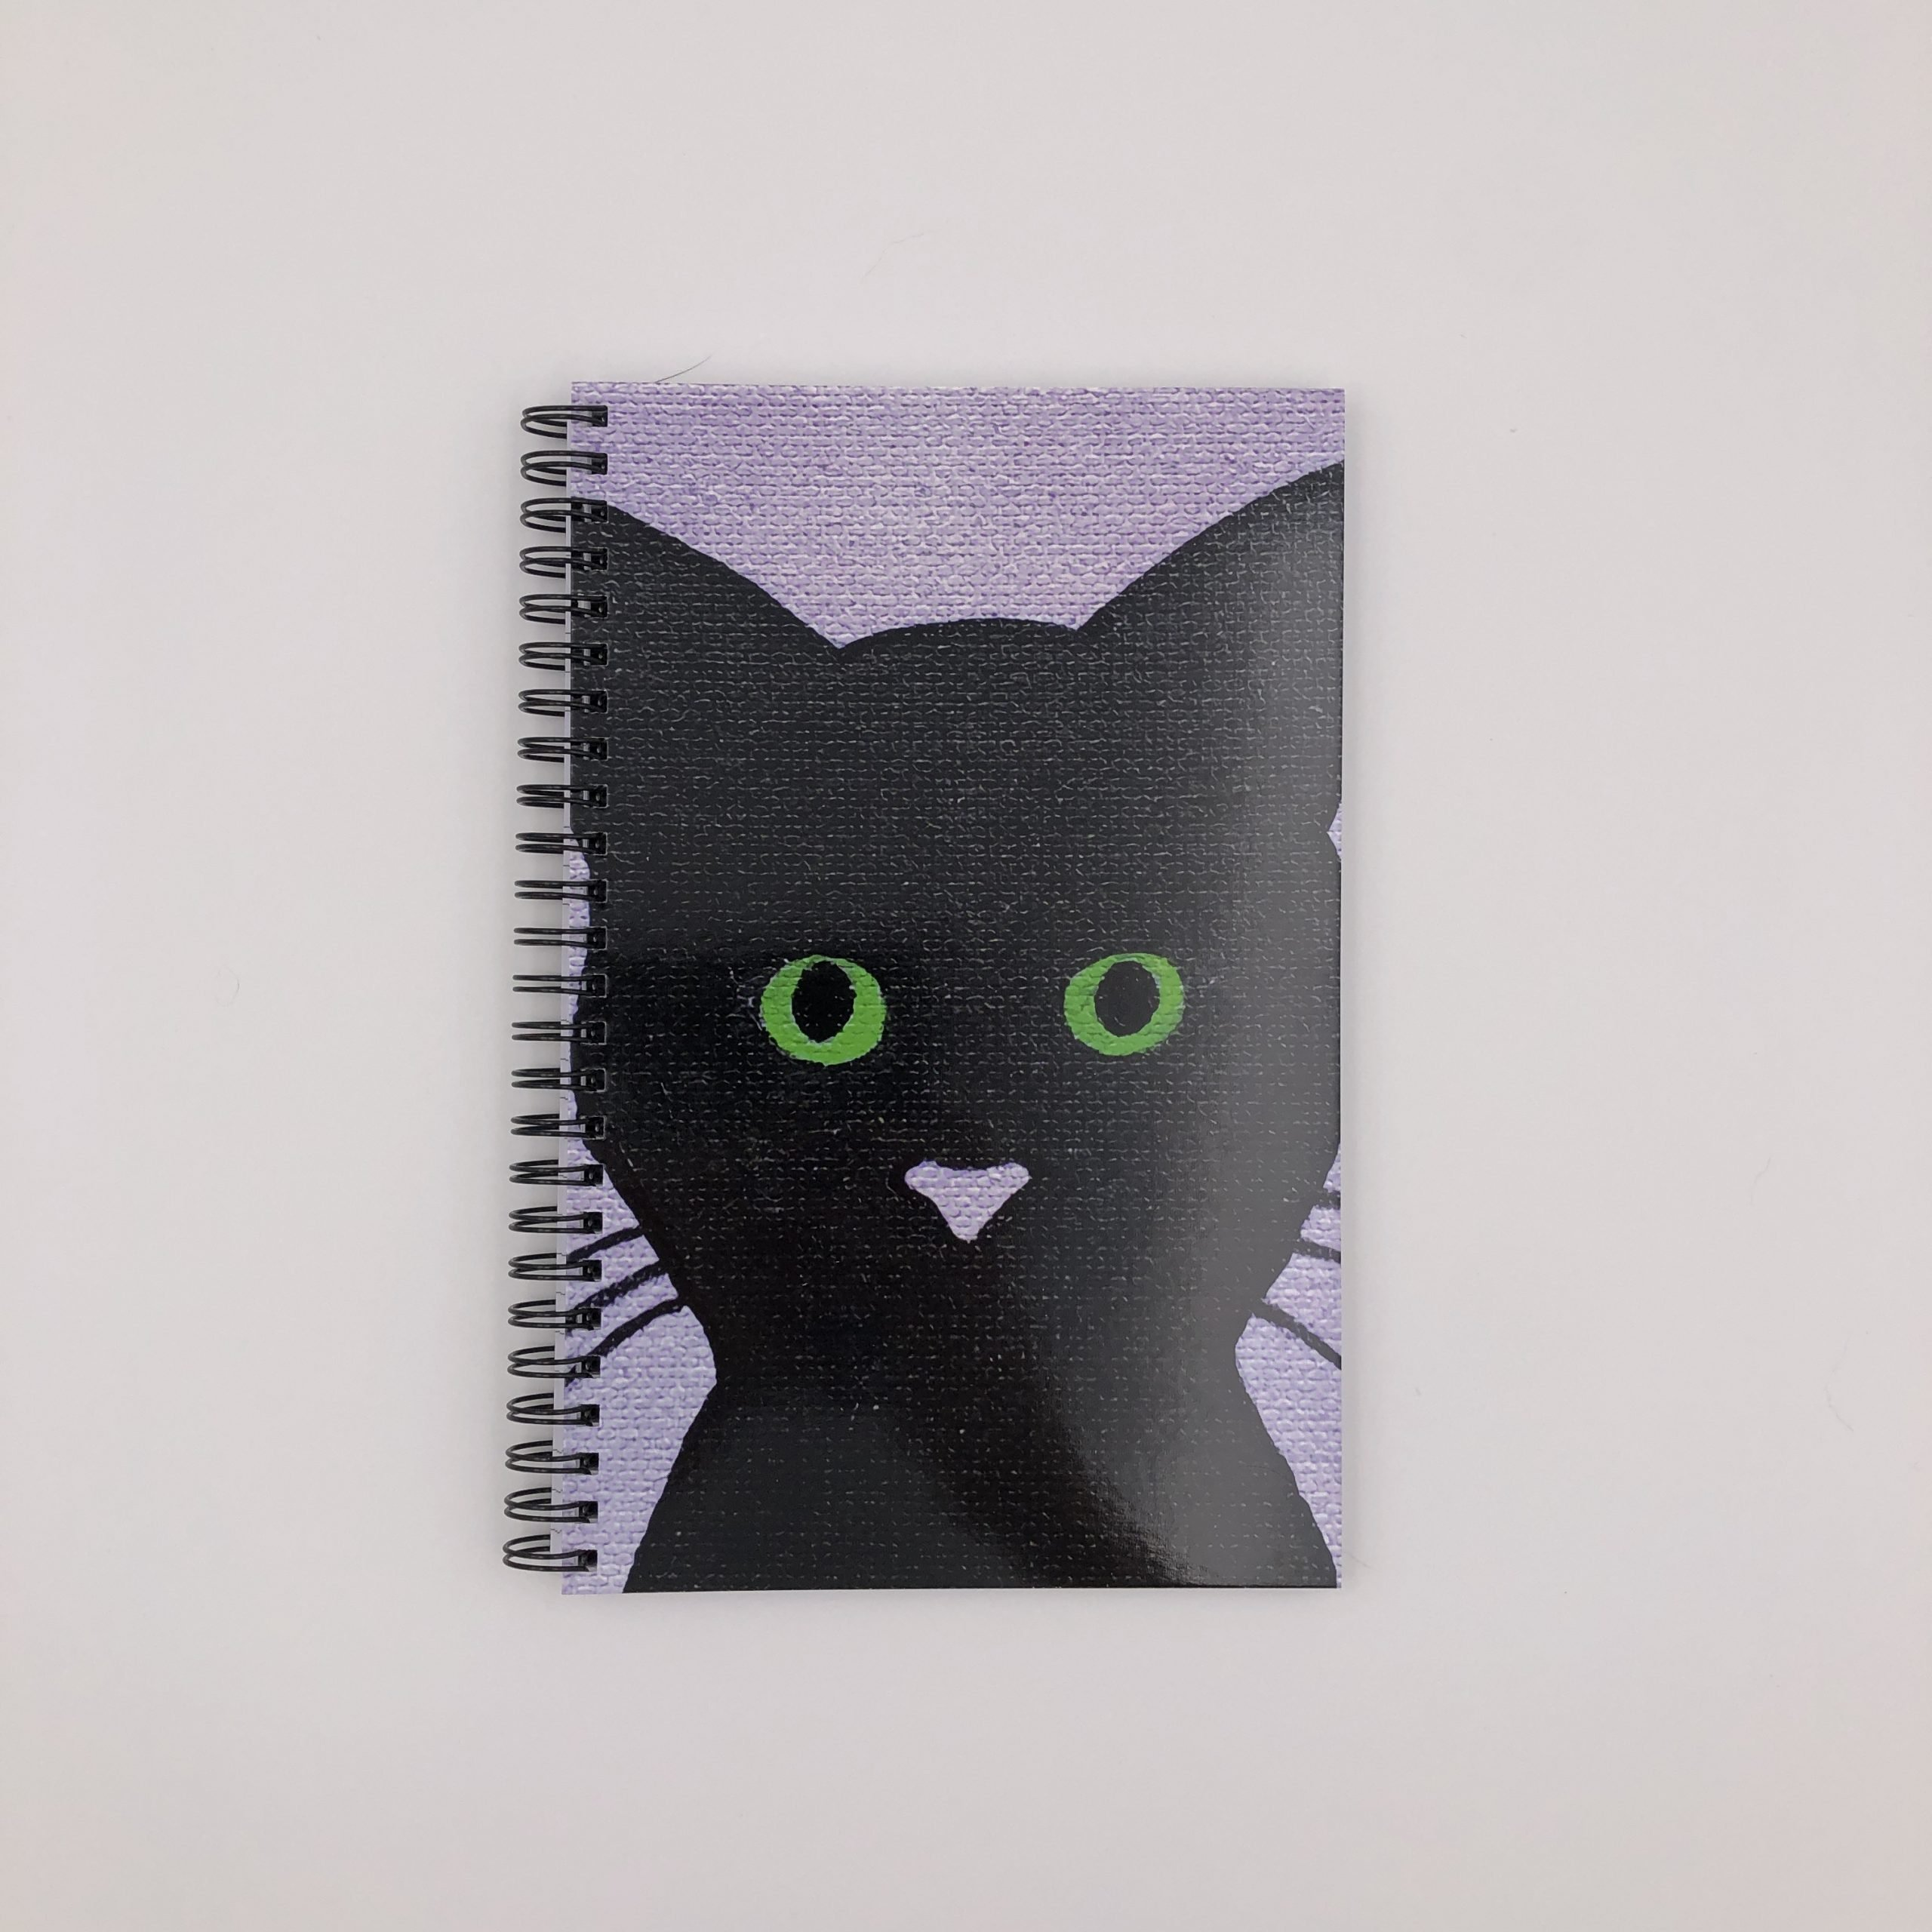 Shadow notebook